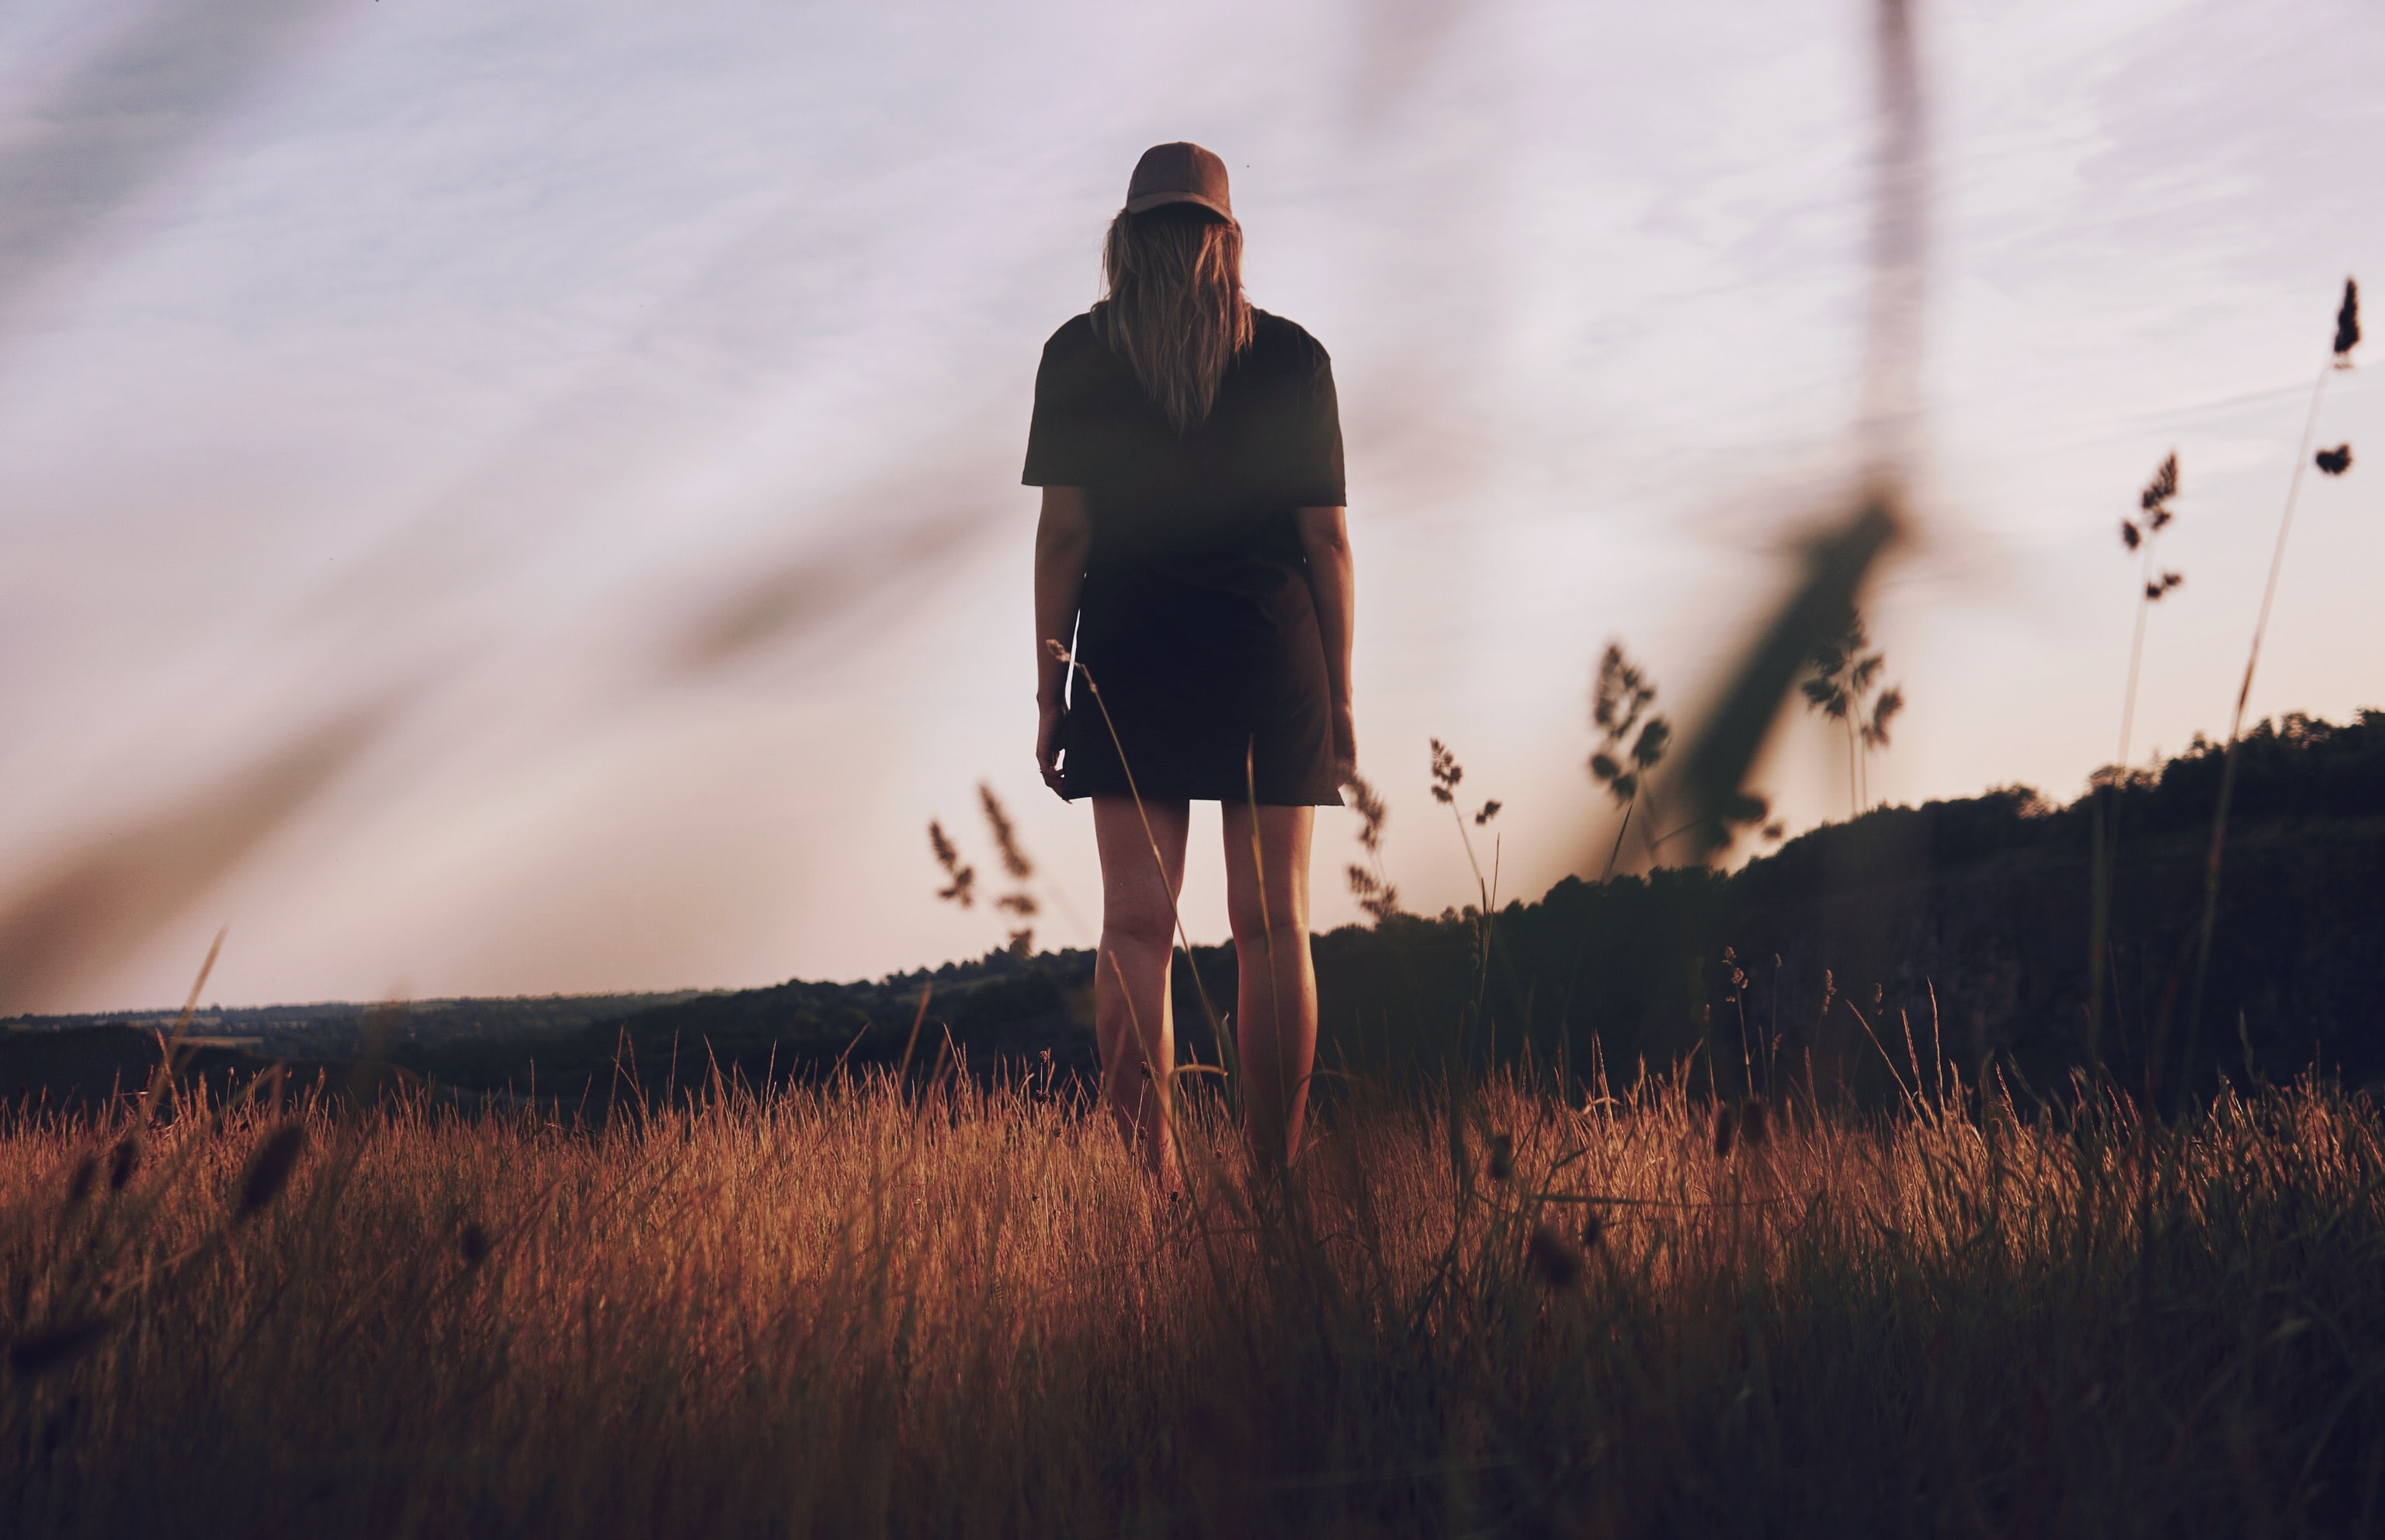 worm's view photography of woman standing on grass field